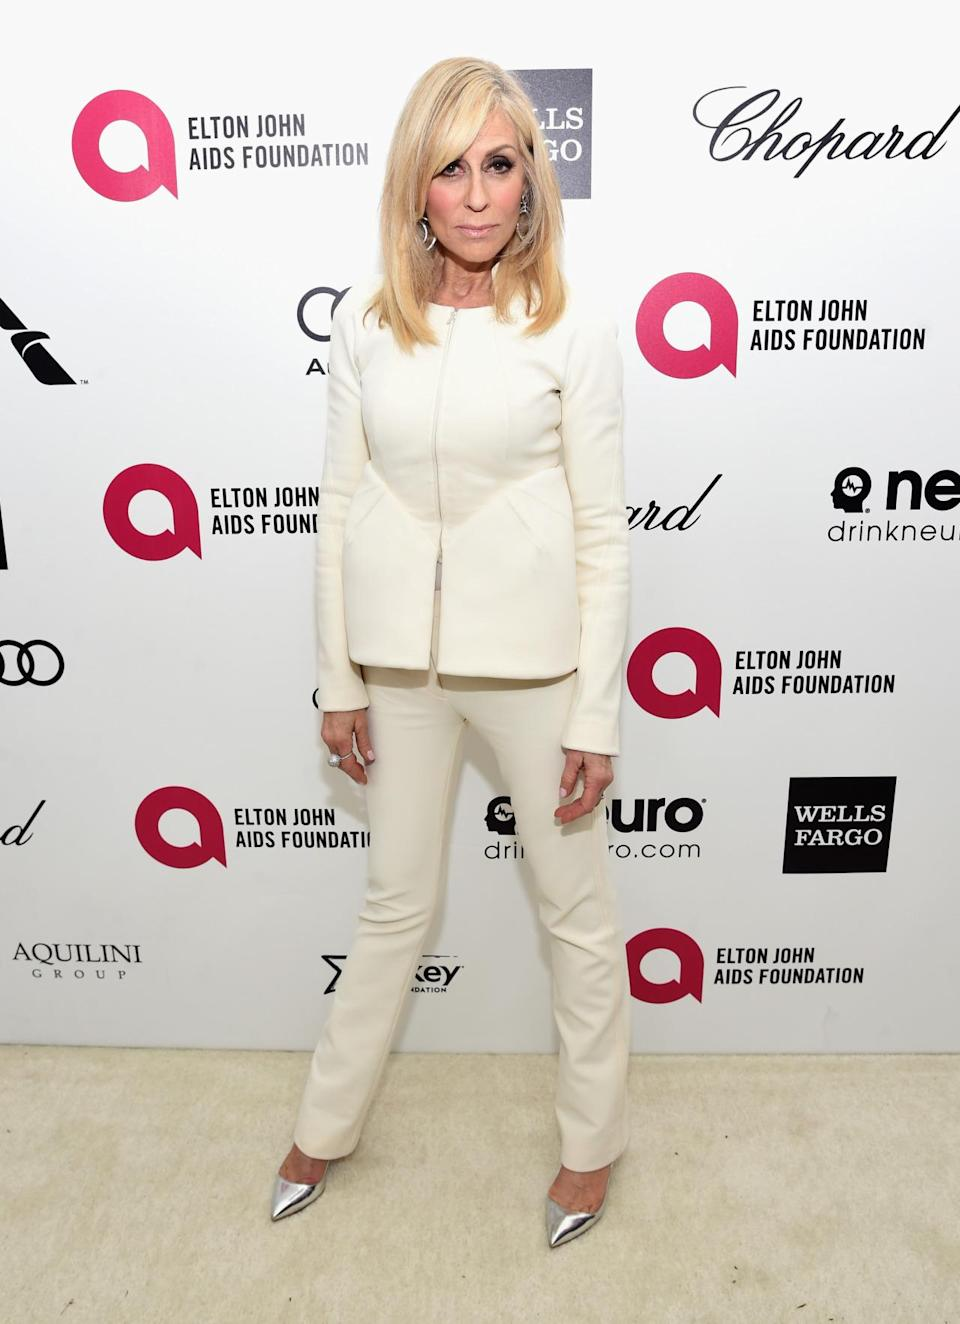 The Transparent star at 66 is bringing sexy back (or did it ever really go away) in a cream suit, silver heels, and bombshell blowout.